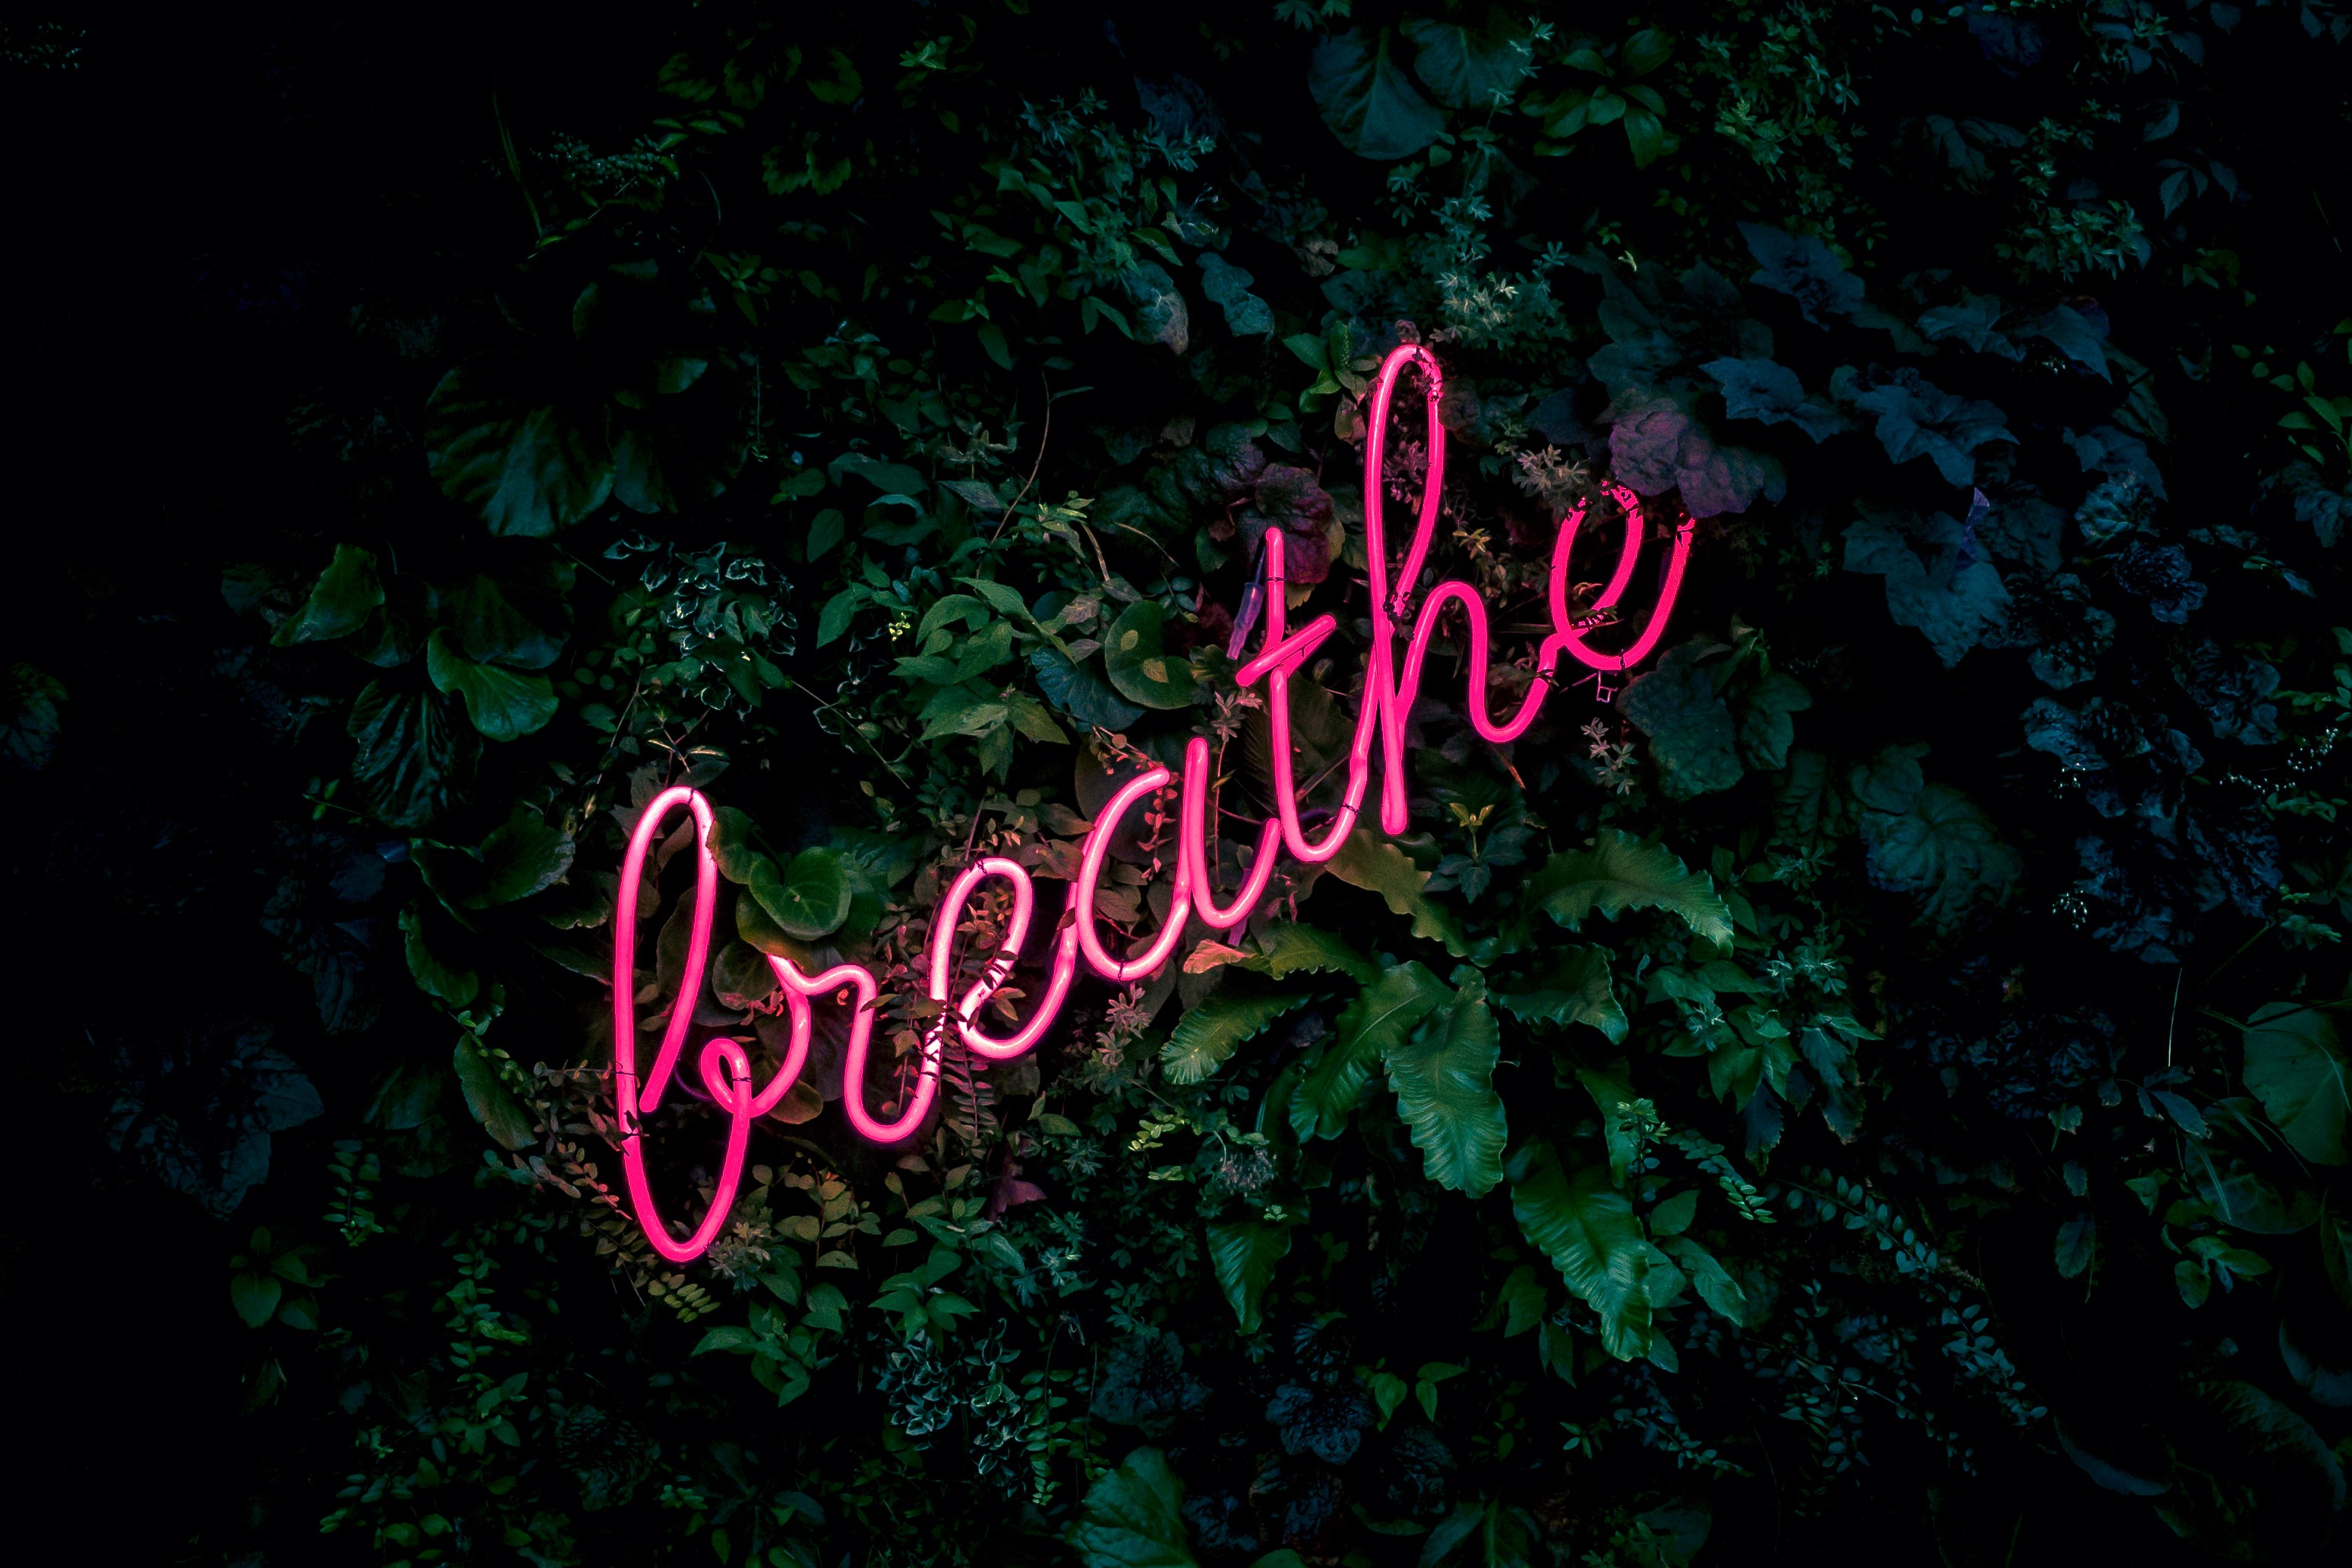 A neon sign of the word 'breathe' with leaves as a backdrop.